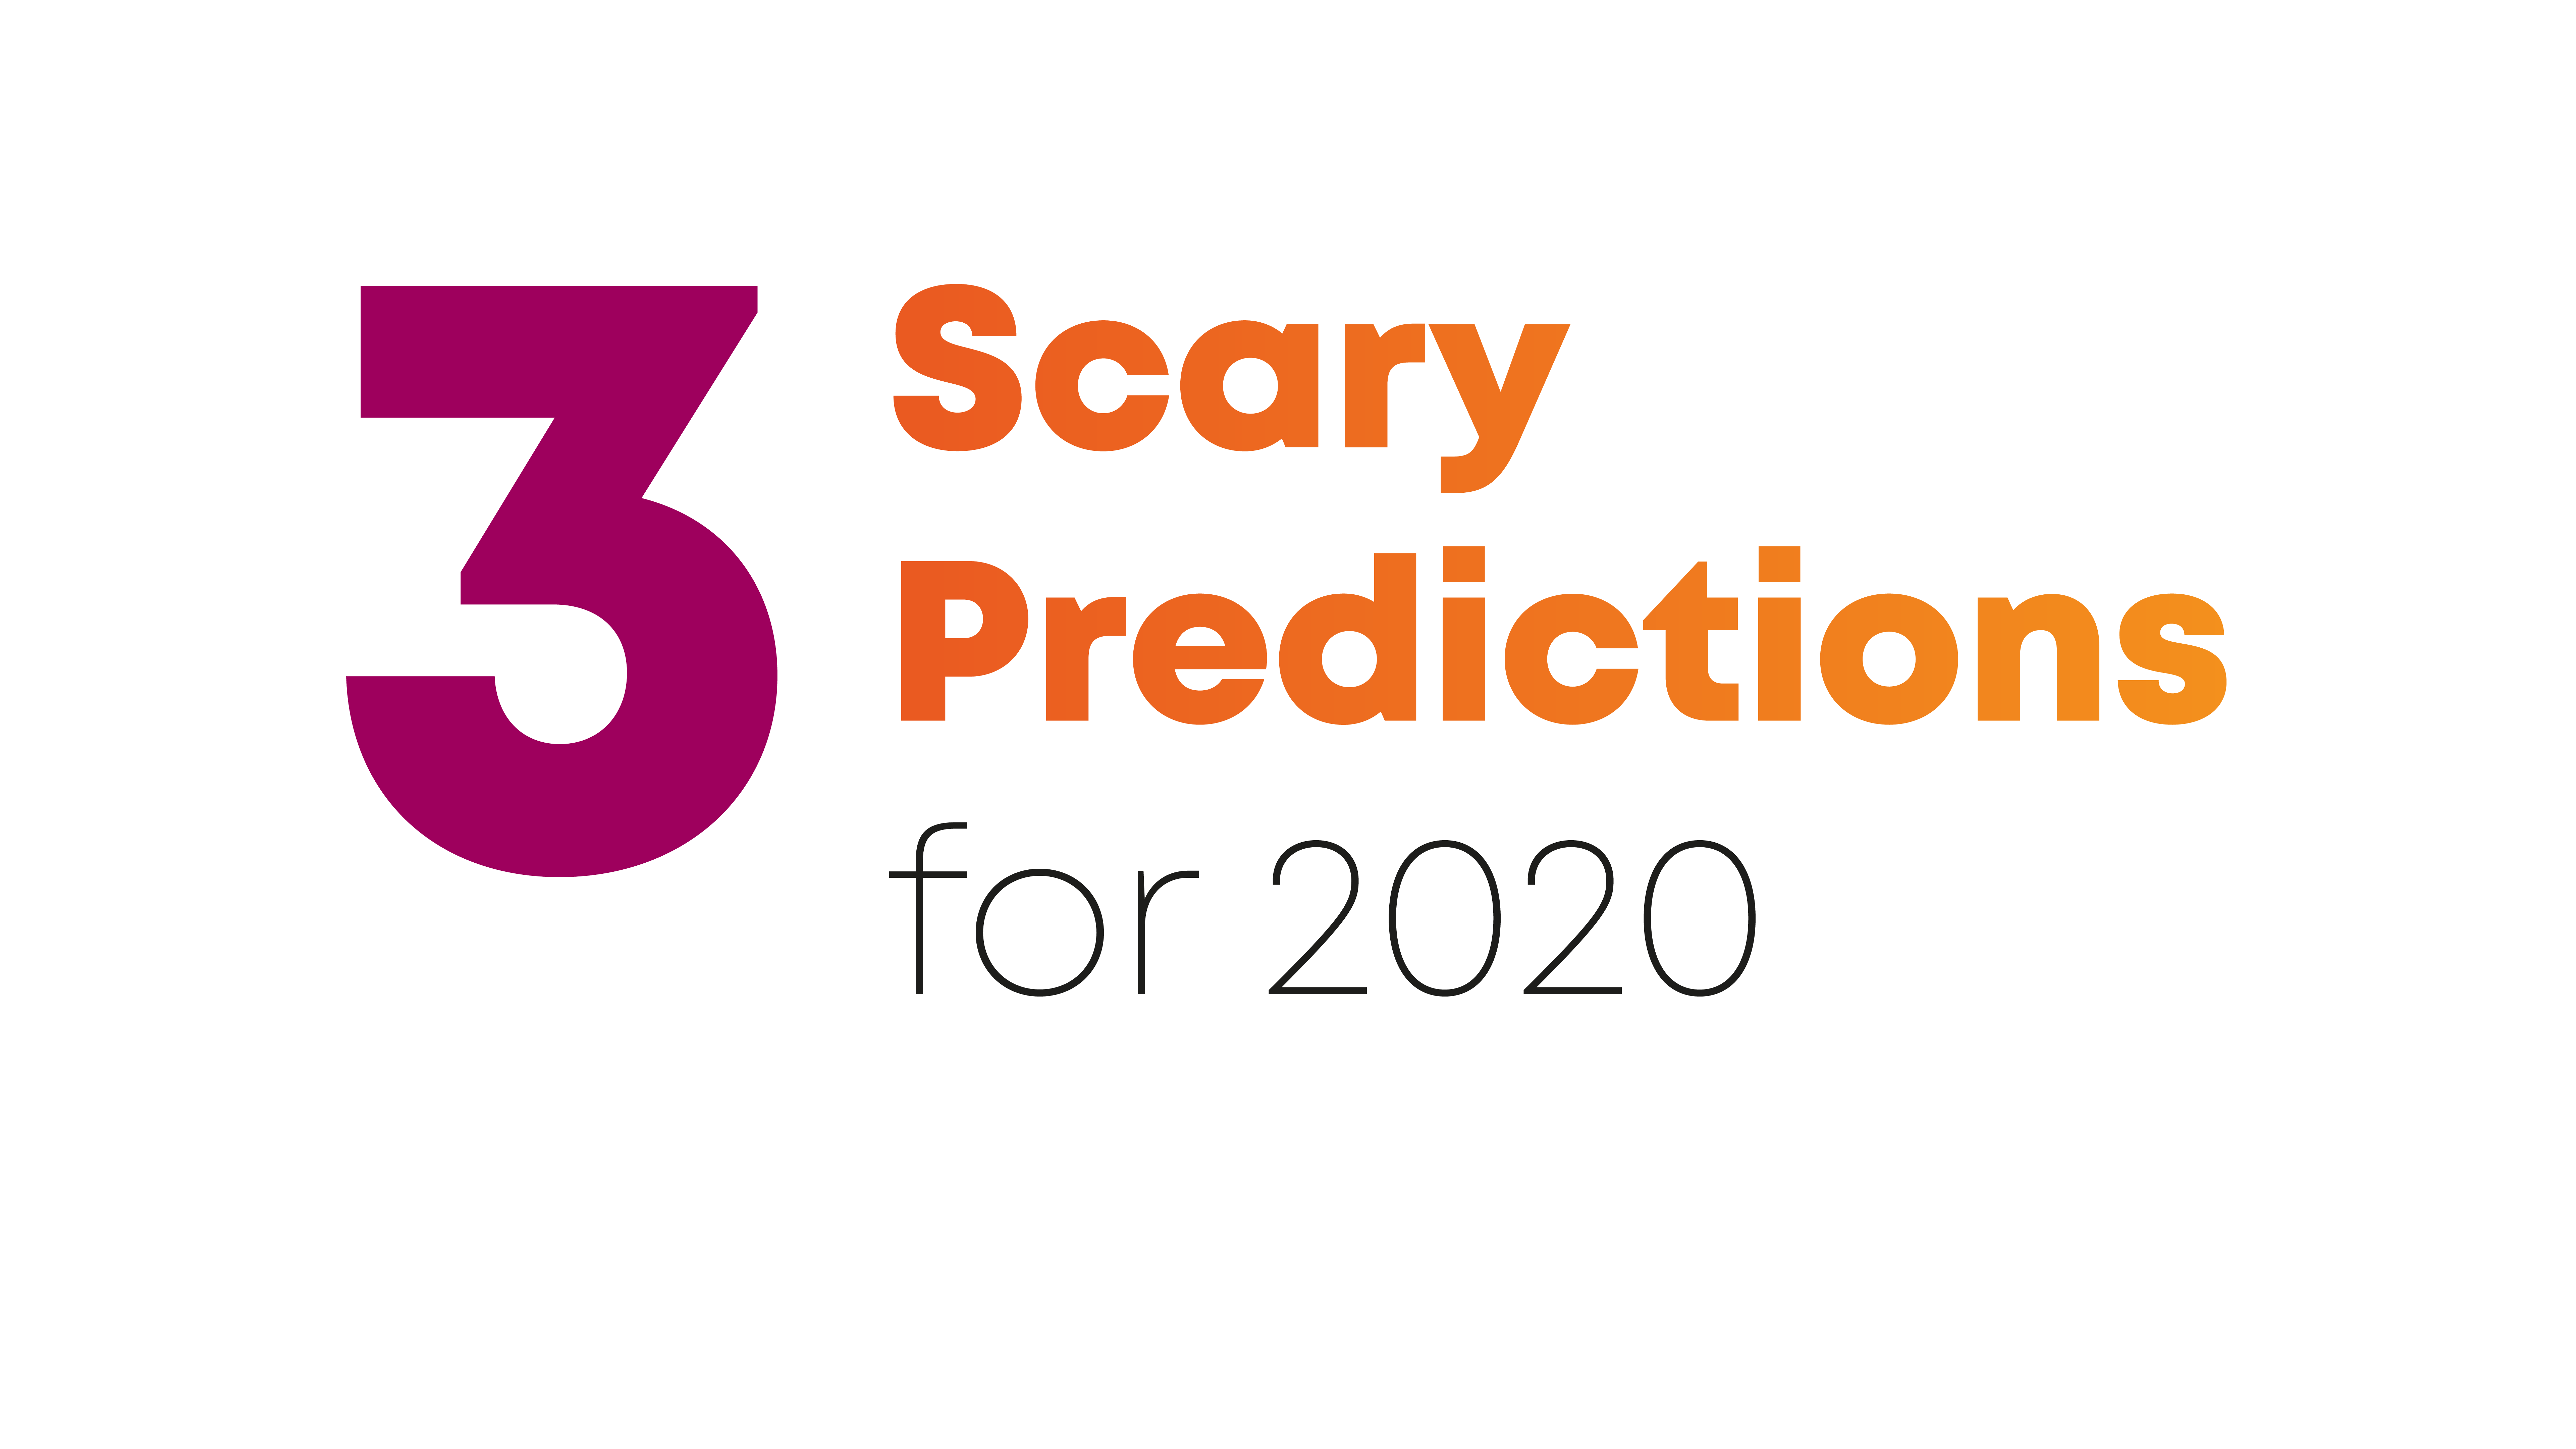 3 Scary Predictions for 2020